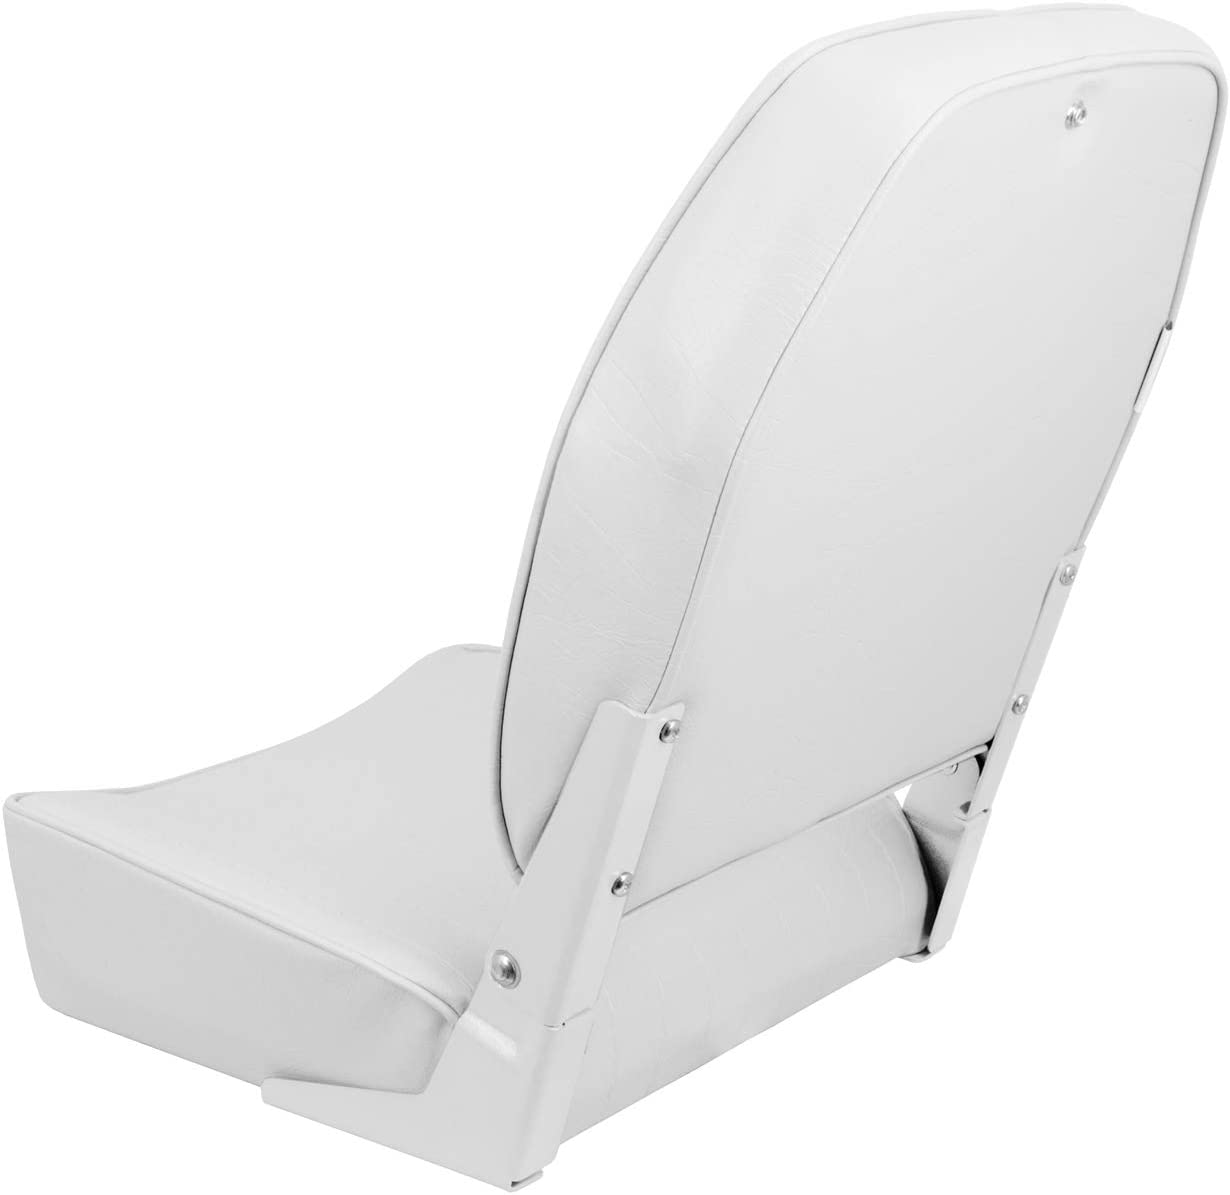 Kimpex Economy High Back Fold Down Boat Seat Chair White Vinyl Waterproof